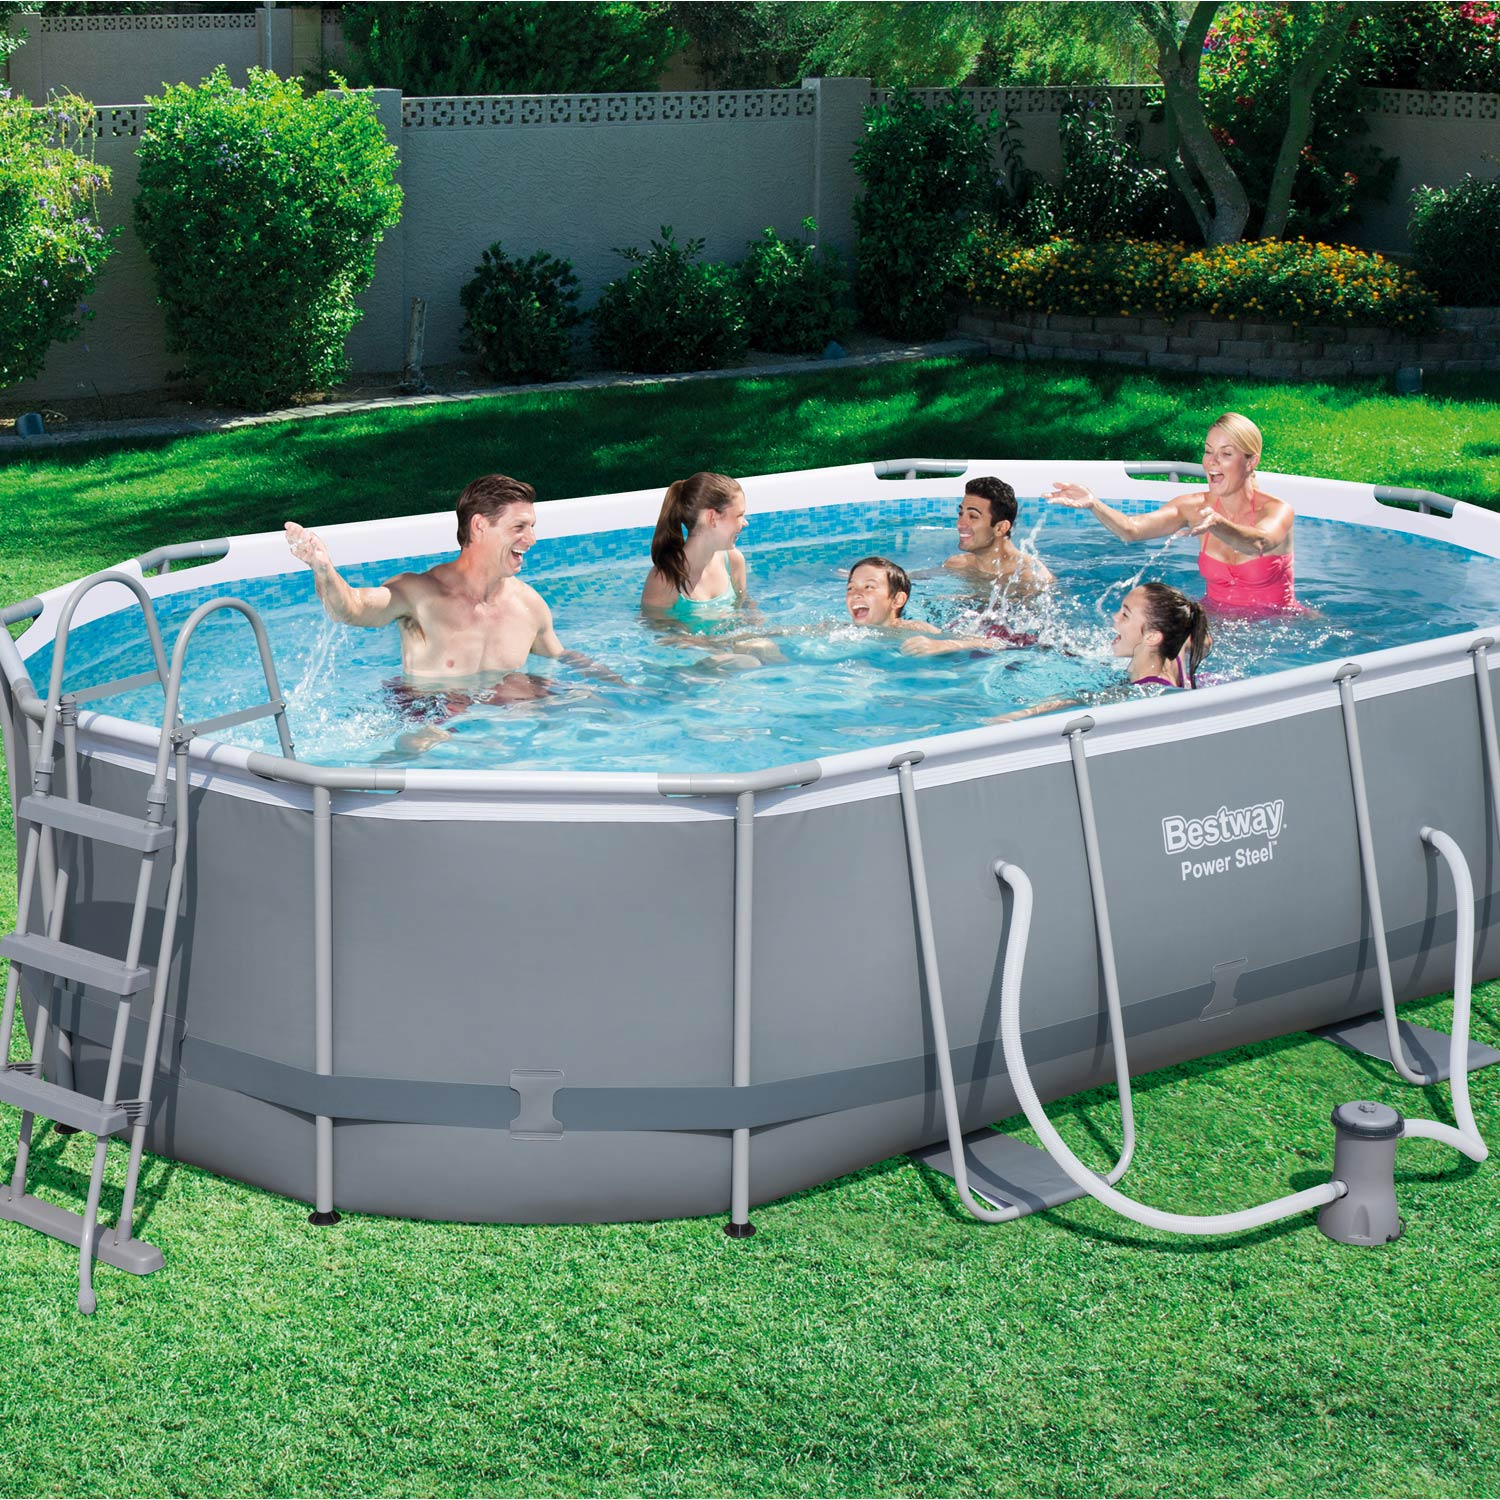 Piscine hors sol autoportante tubulaire bestway l x for Piscine tubulaire grise